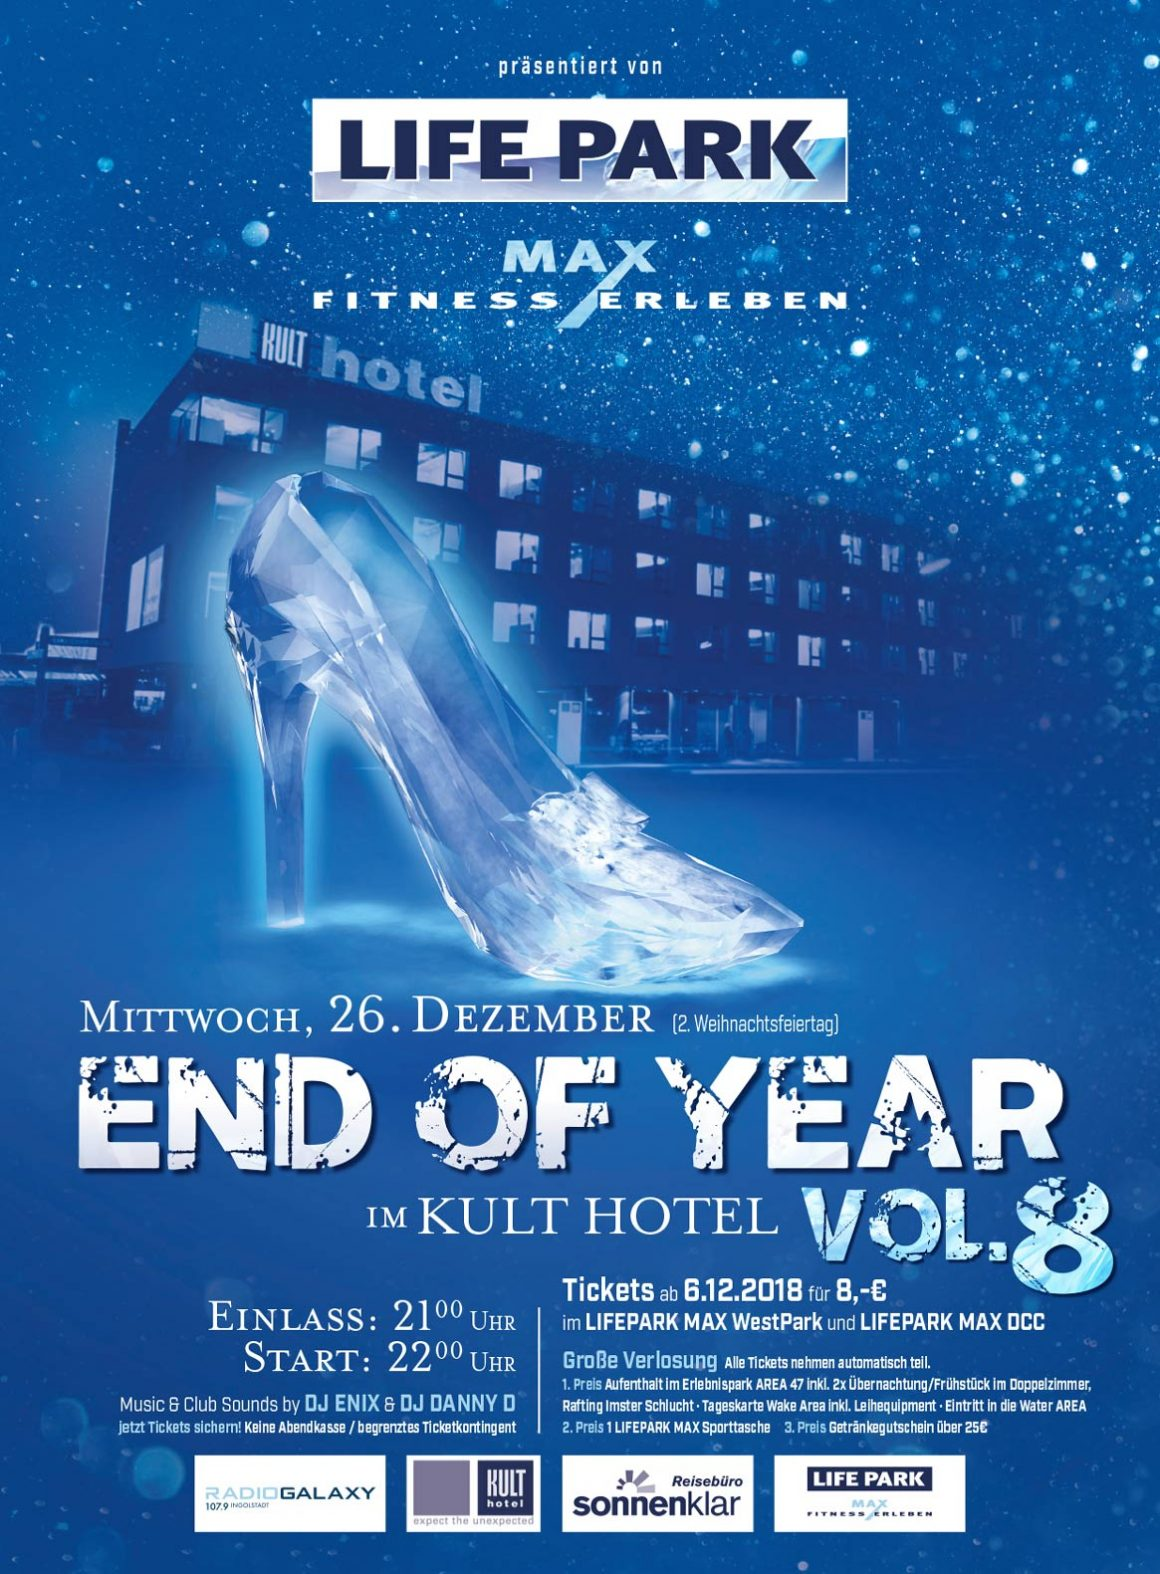 End of Year Vol.8